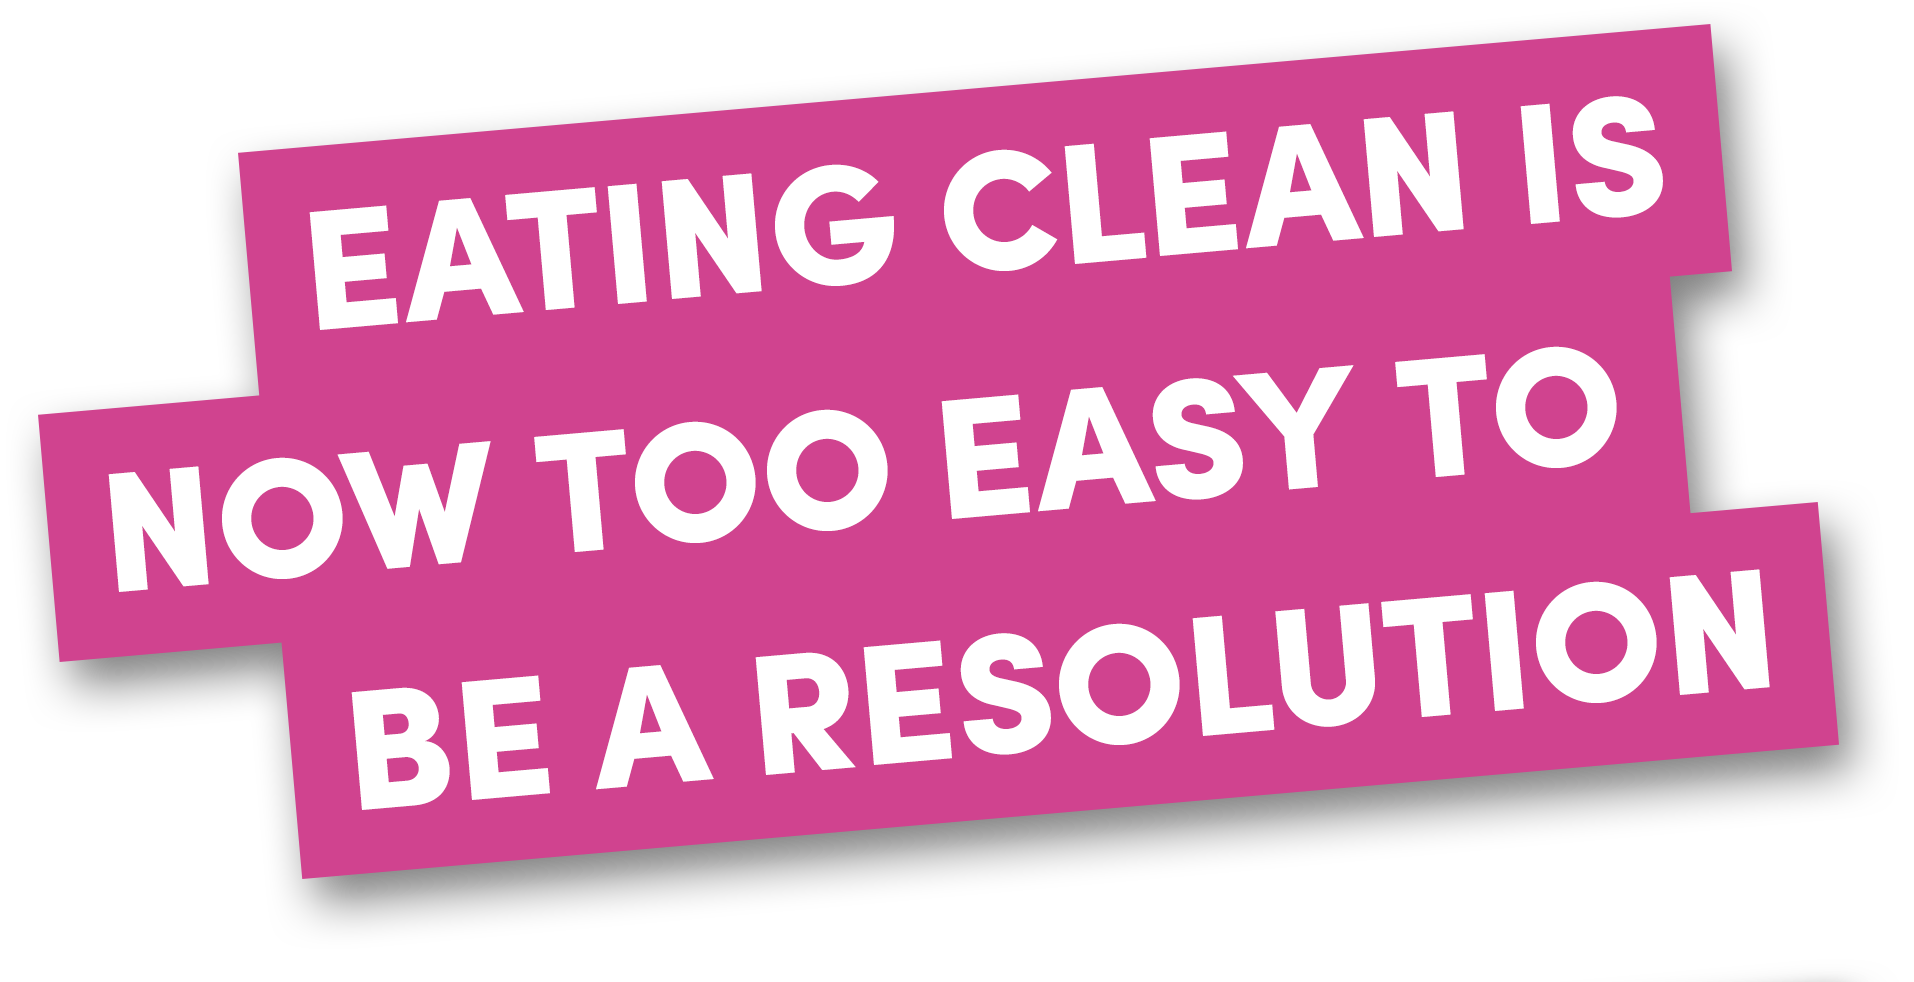 Eating clean is now too easy to be a resolution.